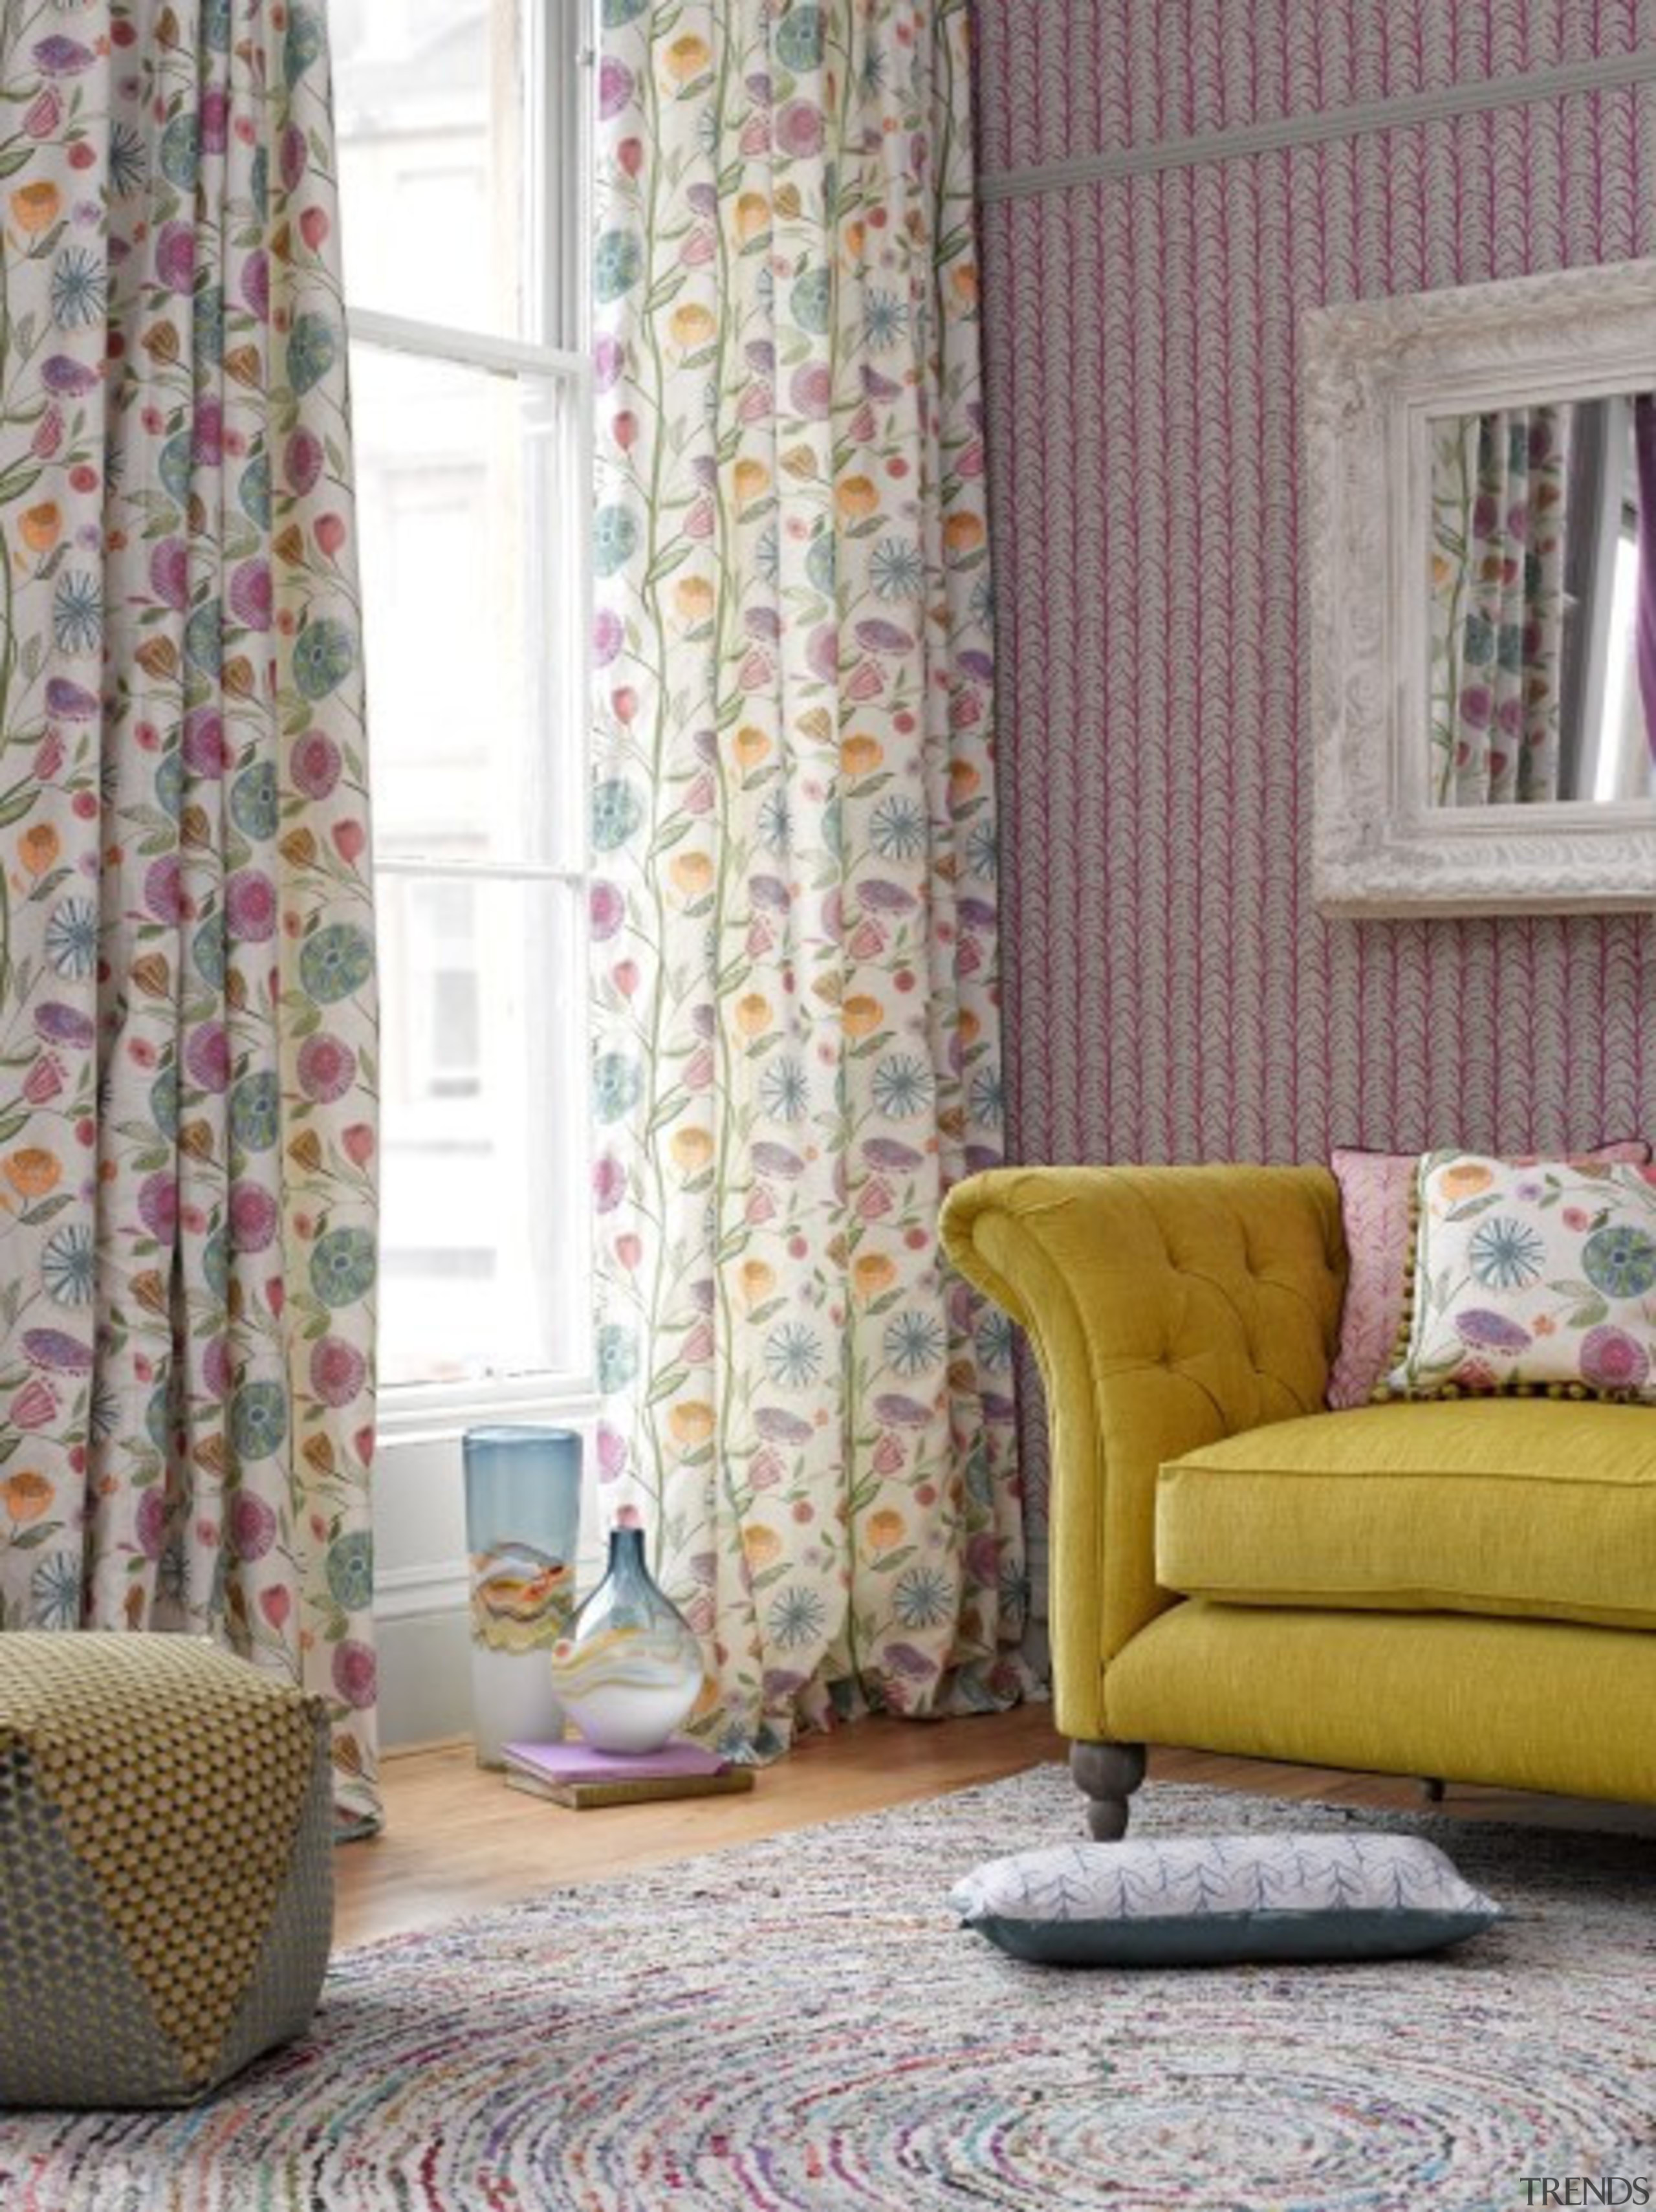 Check out more. curtain, home, interior design, living room, room, textile, wall, window, window covering, window treatment, gray